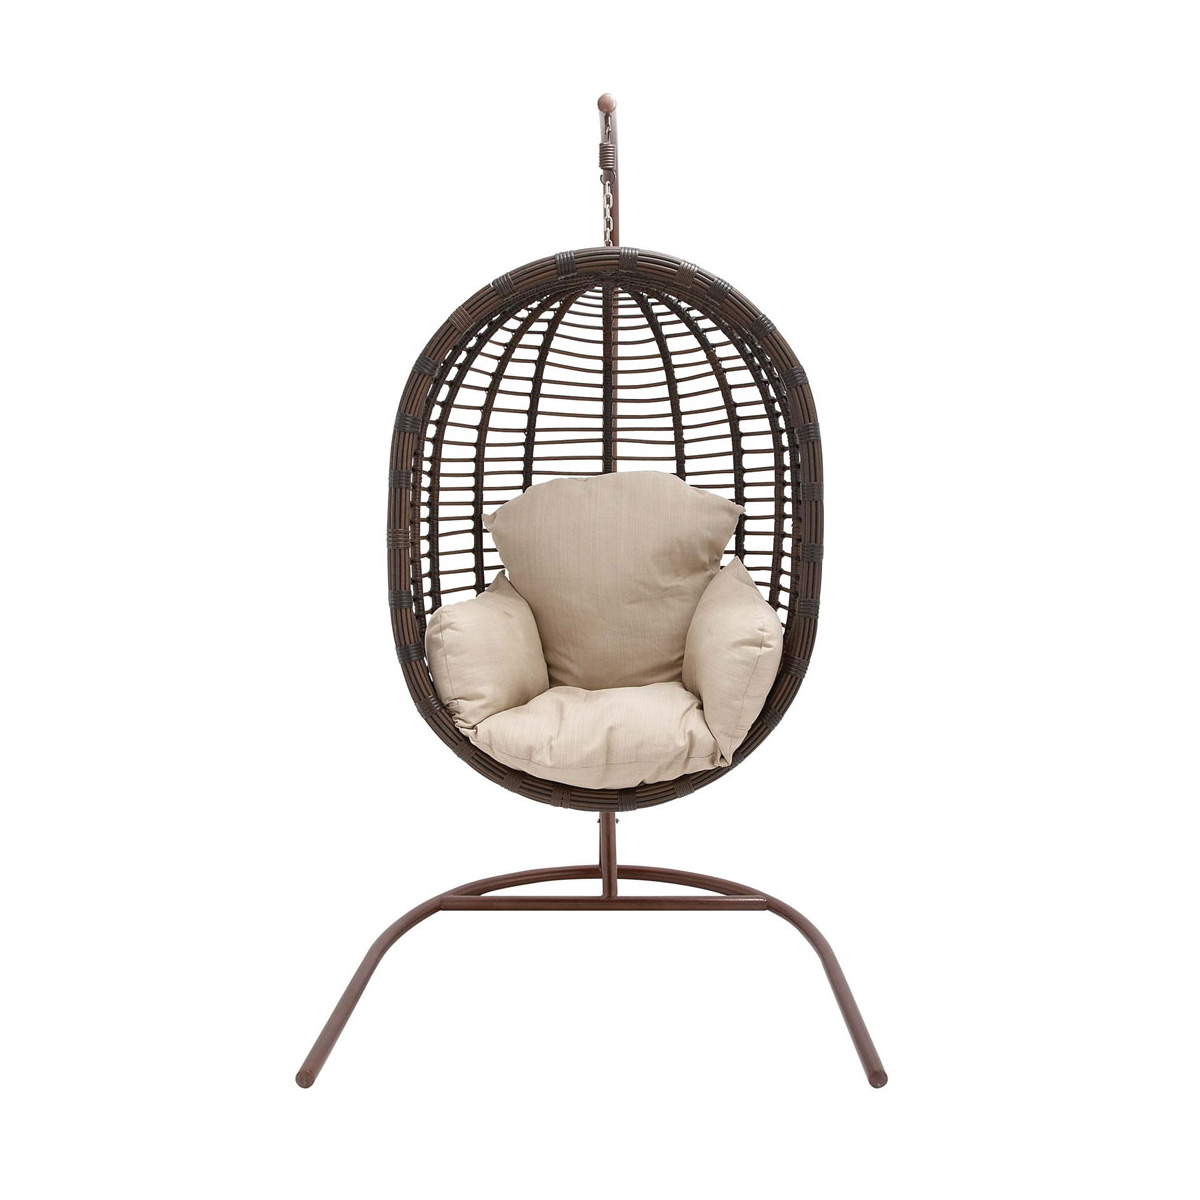 Egg Basket Chair Hanover Outdoor Wicker Rattan Hanging Egg Chair Swing With